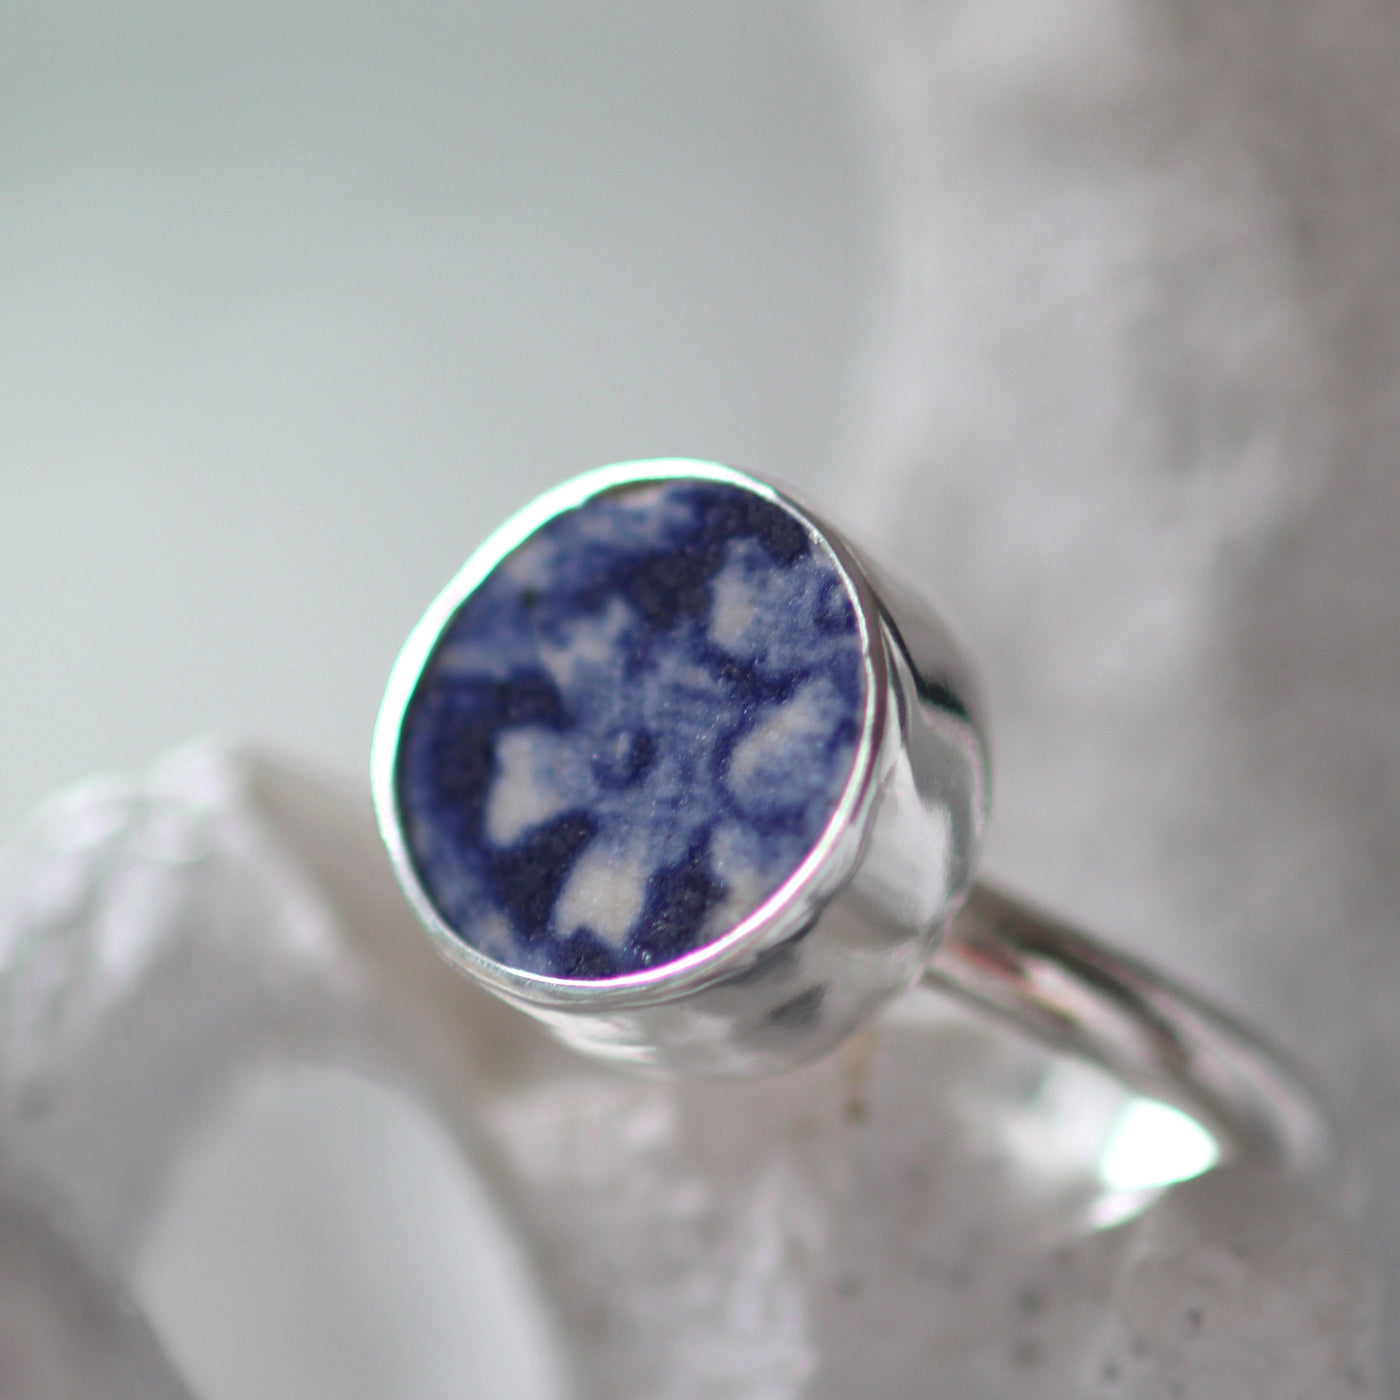 Sea Pottery Ring, ceramic ring, sea glass jewelry,eco ring, nova scotia, sea pottery, sea glass ring, size seven 7, one of a kind ring